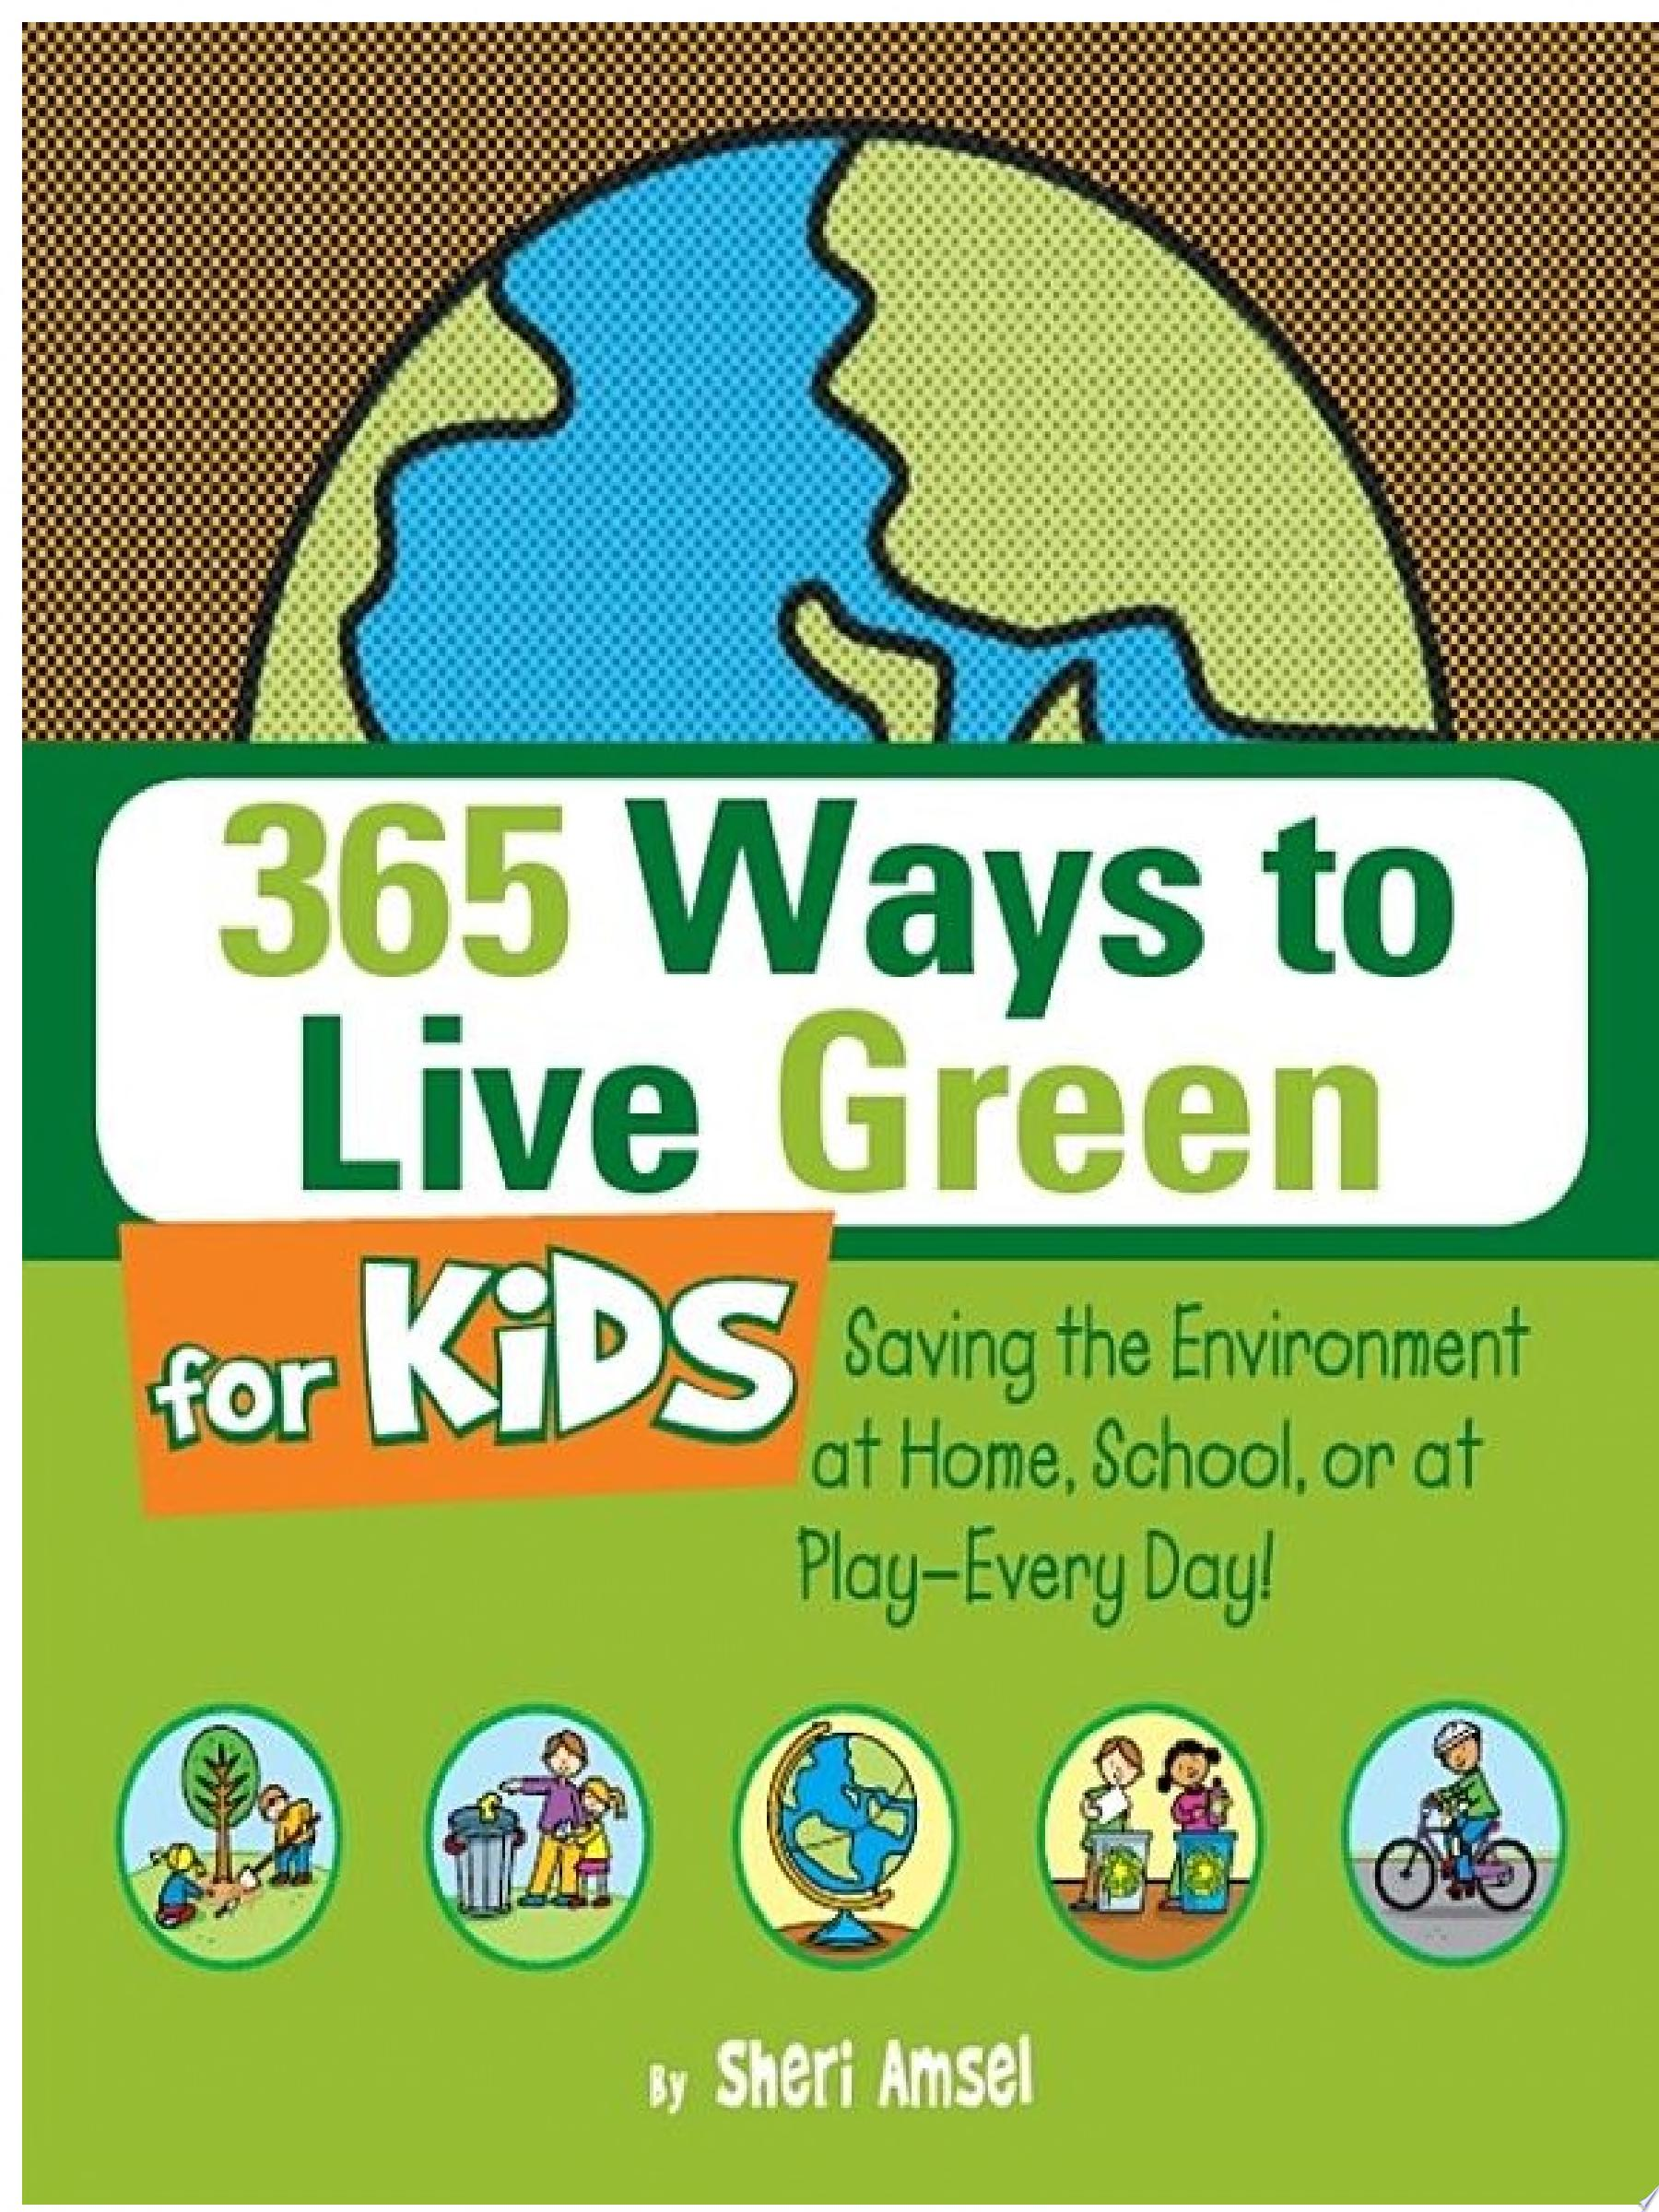 365 Ways to Live Green for Kids